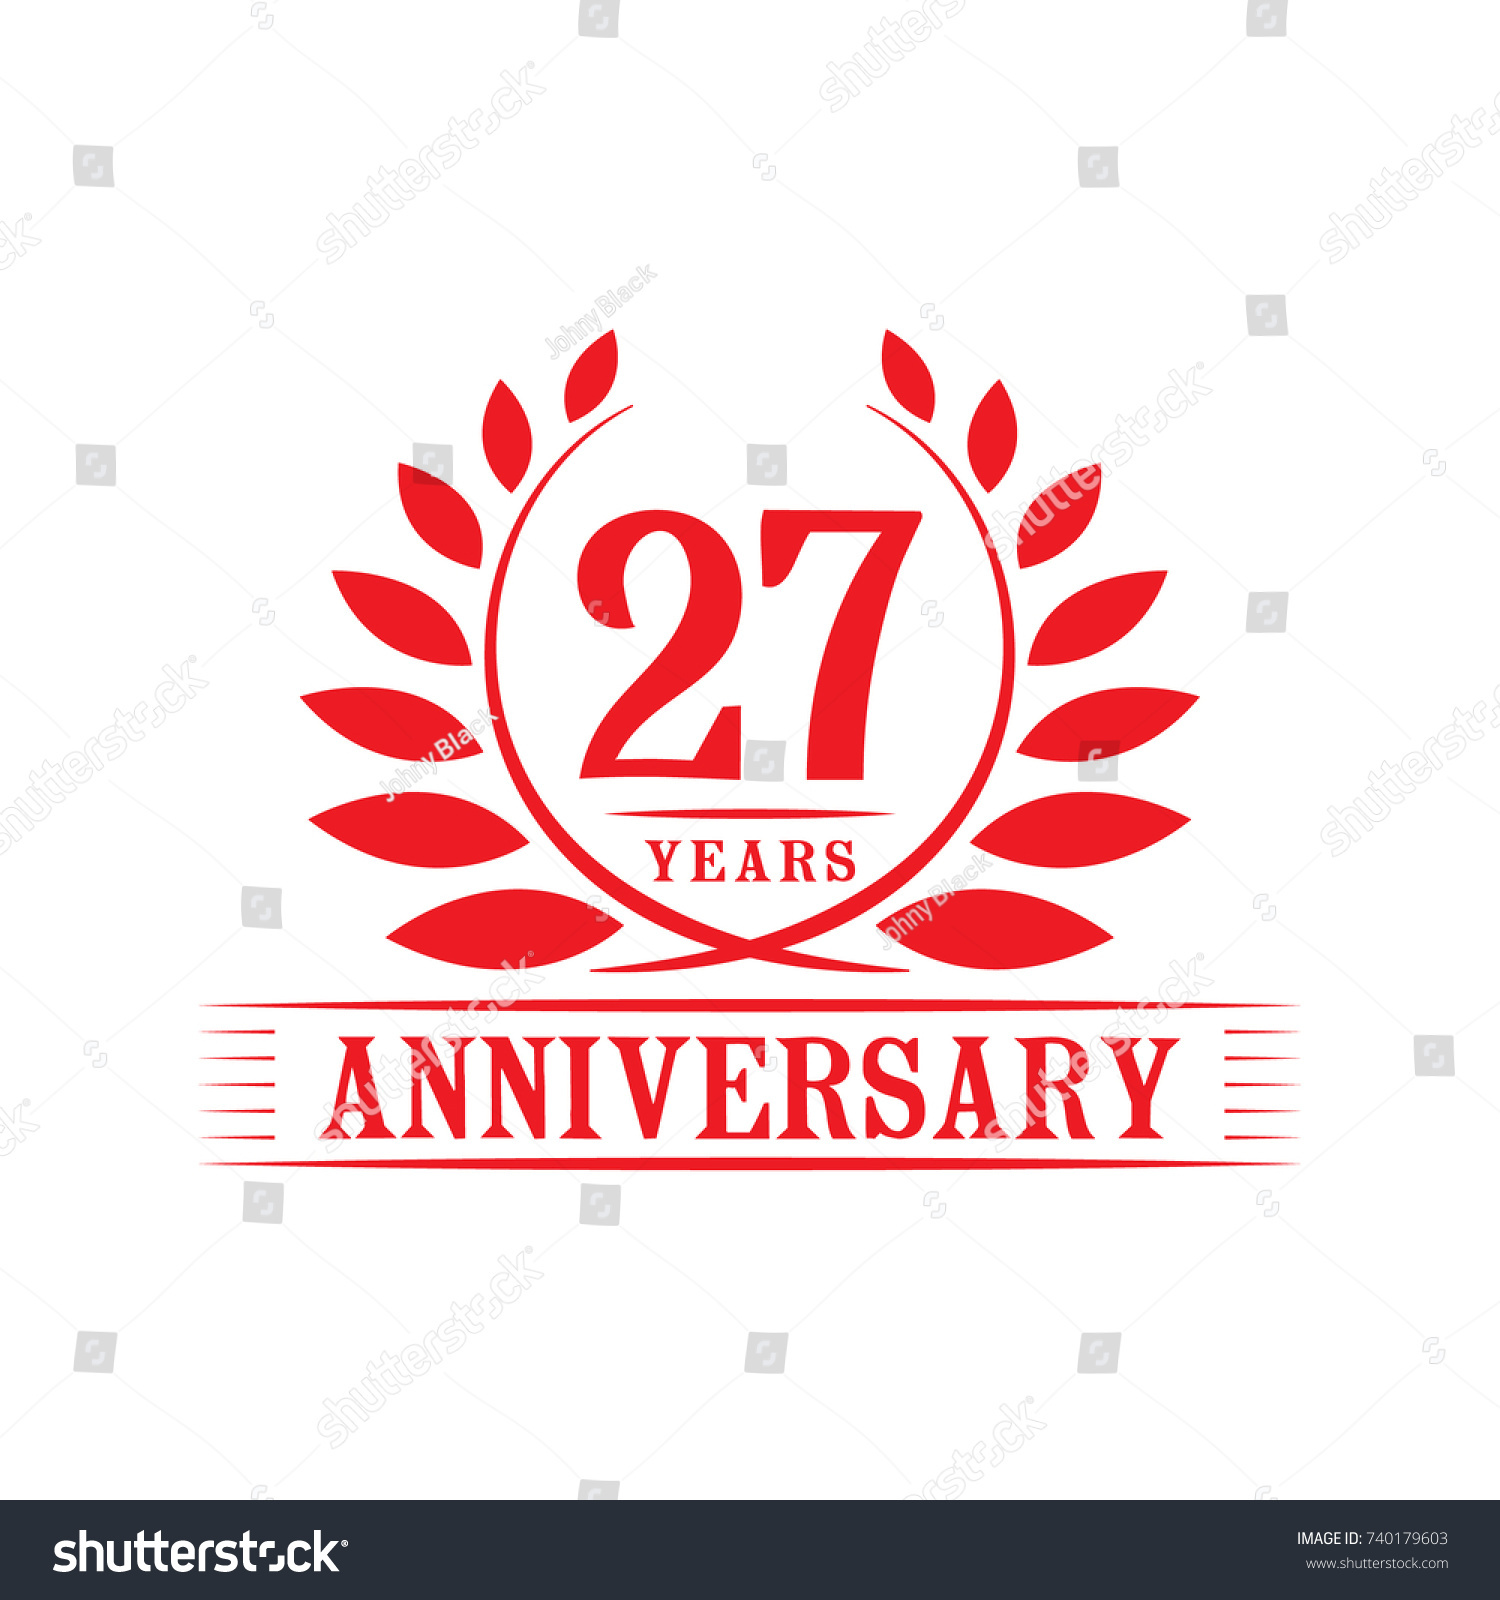 27 years anniversary logo template stock vector 740179603 shutterstock 27 years anniversary logo template biocorpaavc Images